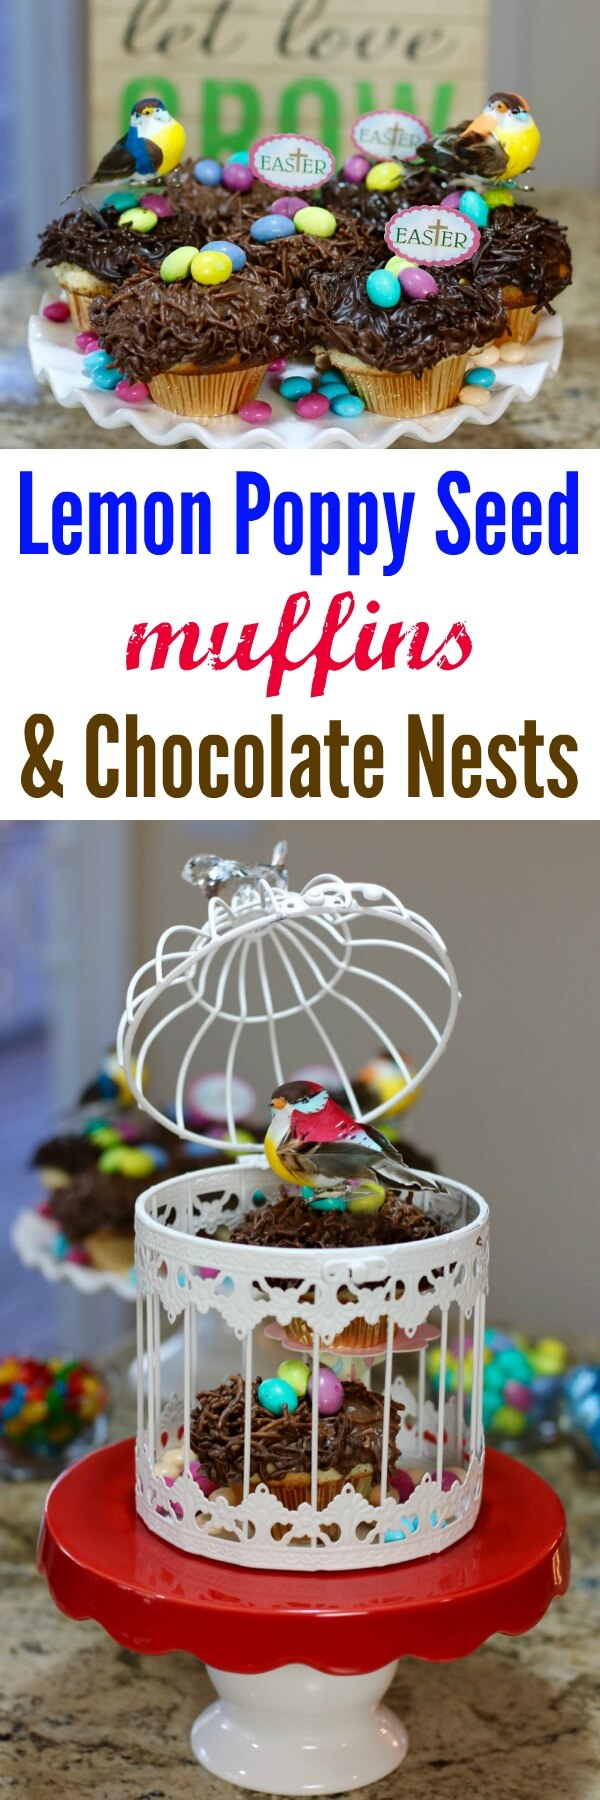 Create beautiful birds' nests for spring with this easy tutorial for Lemon Poppy Seed Muffins and Chocolate Nests - I love how she gets the birds to float above the nests